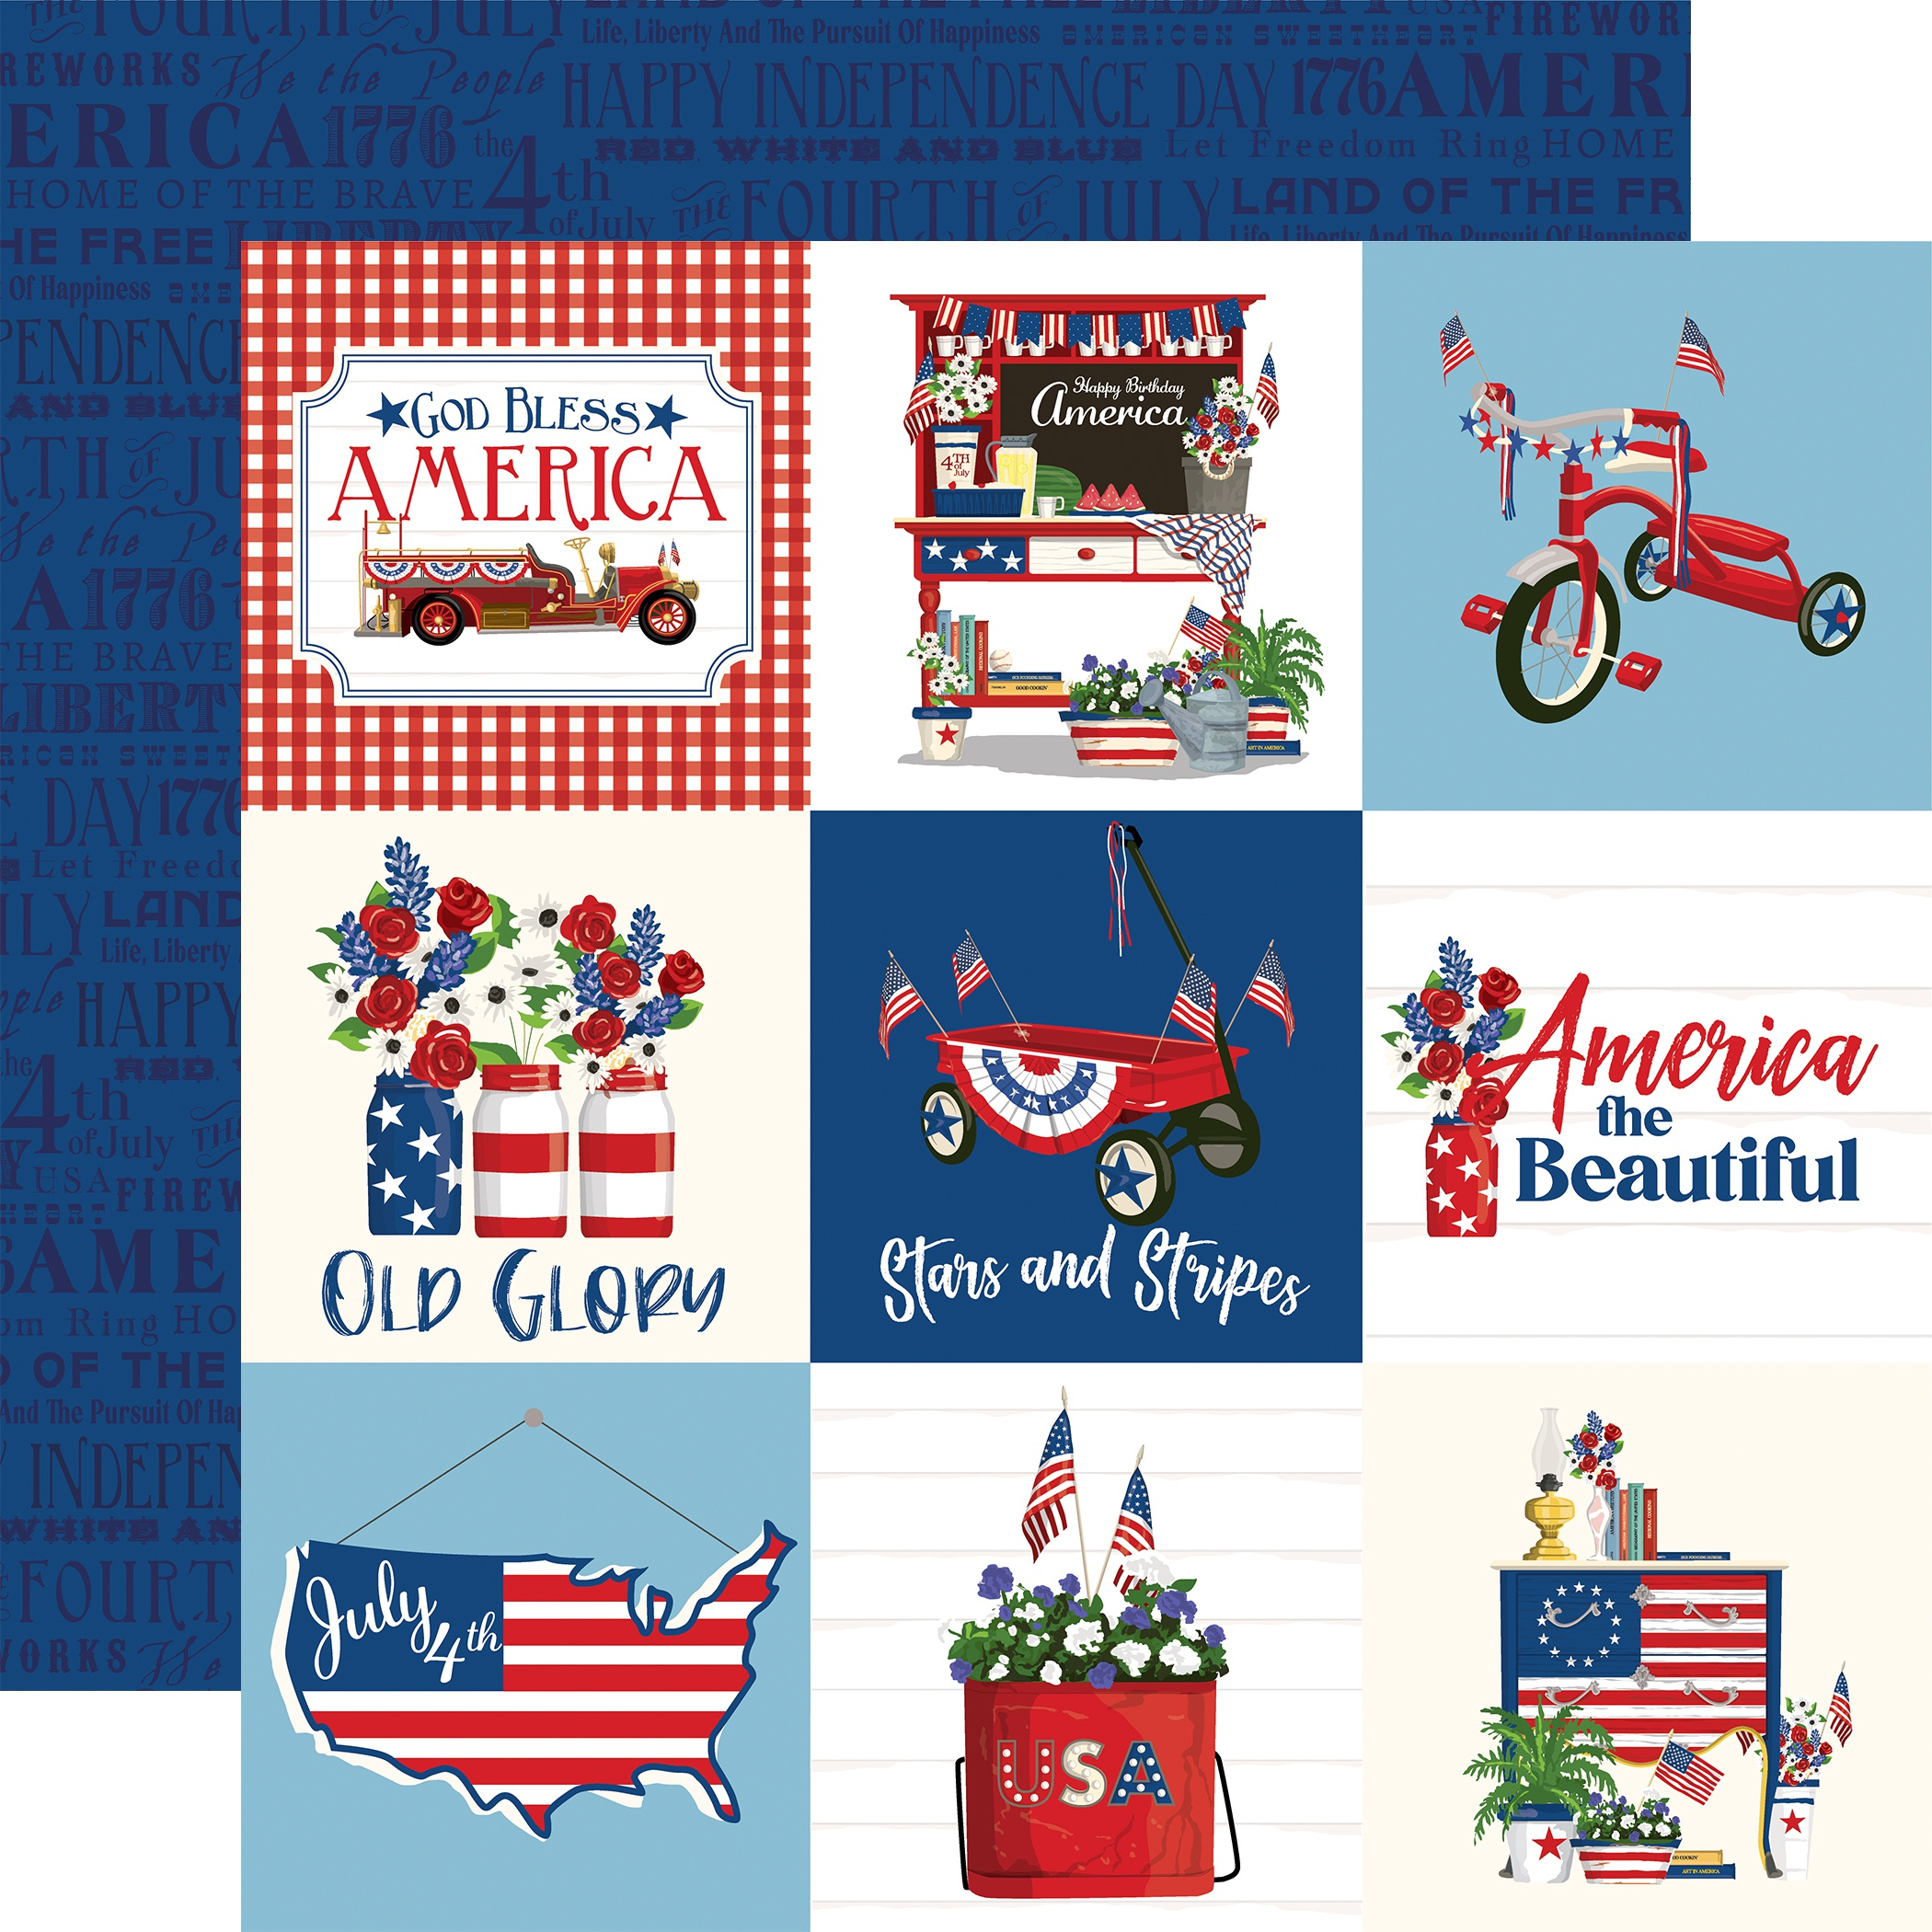 God Bless America Double-Sided Cardstock 12X12-4X4 Journaling Cards